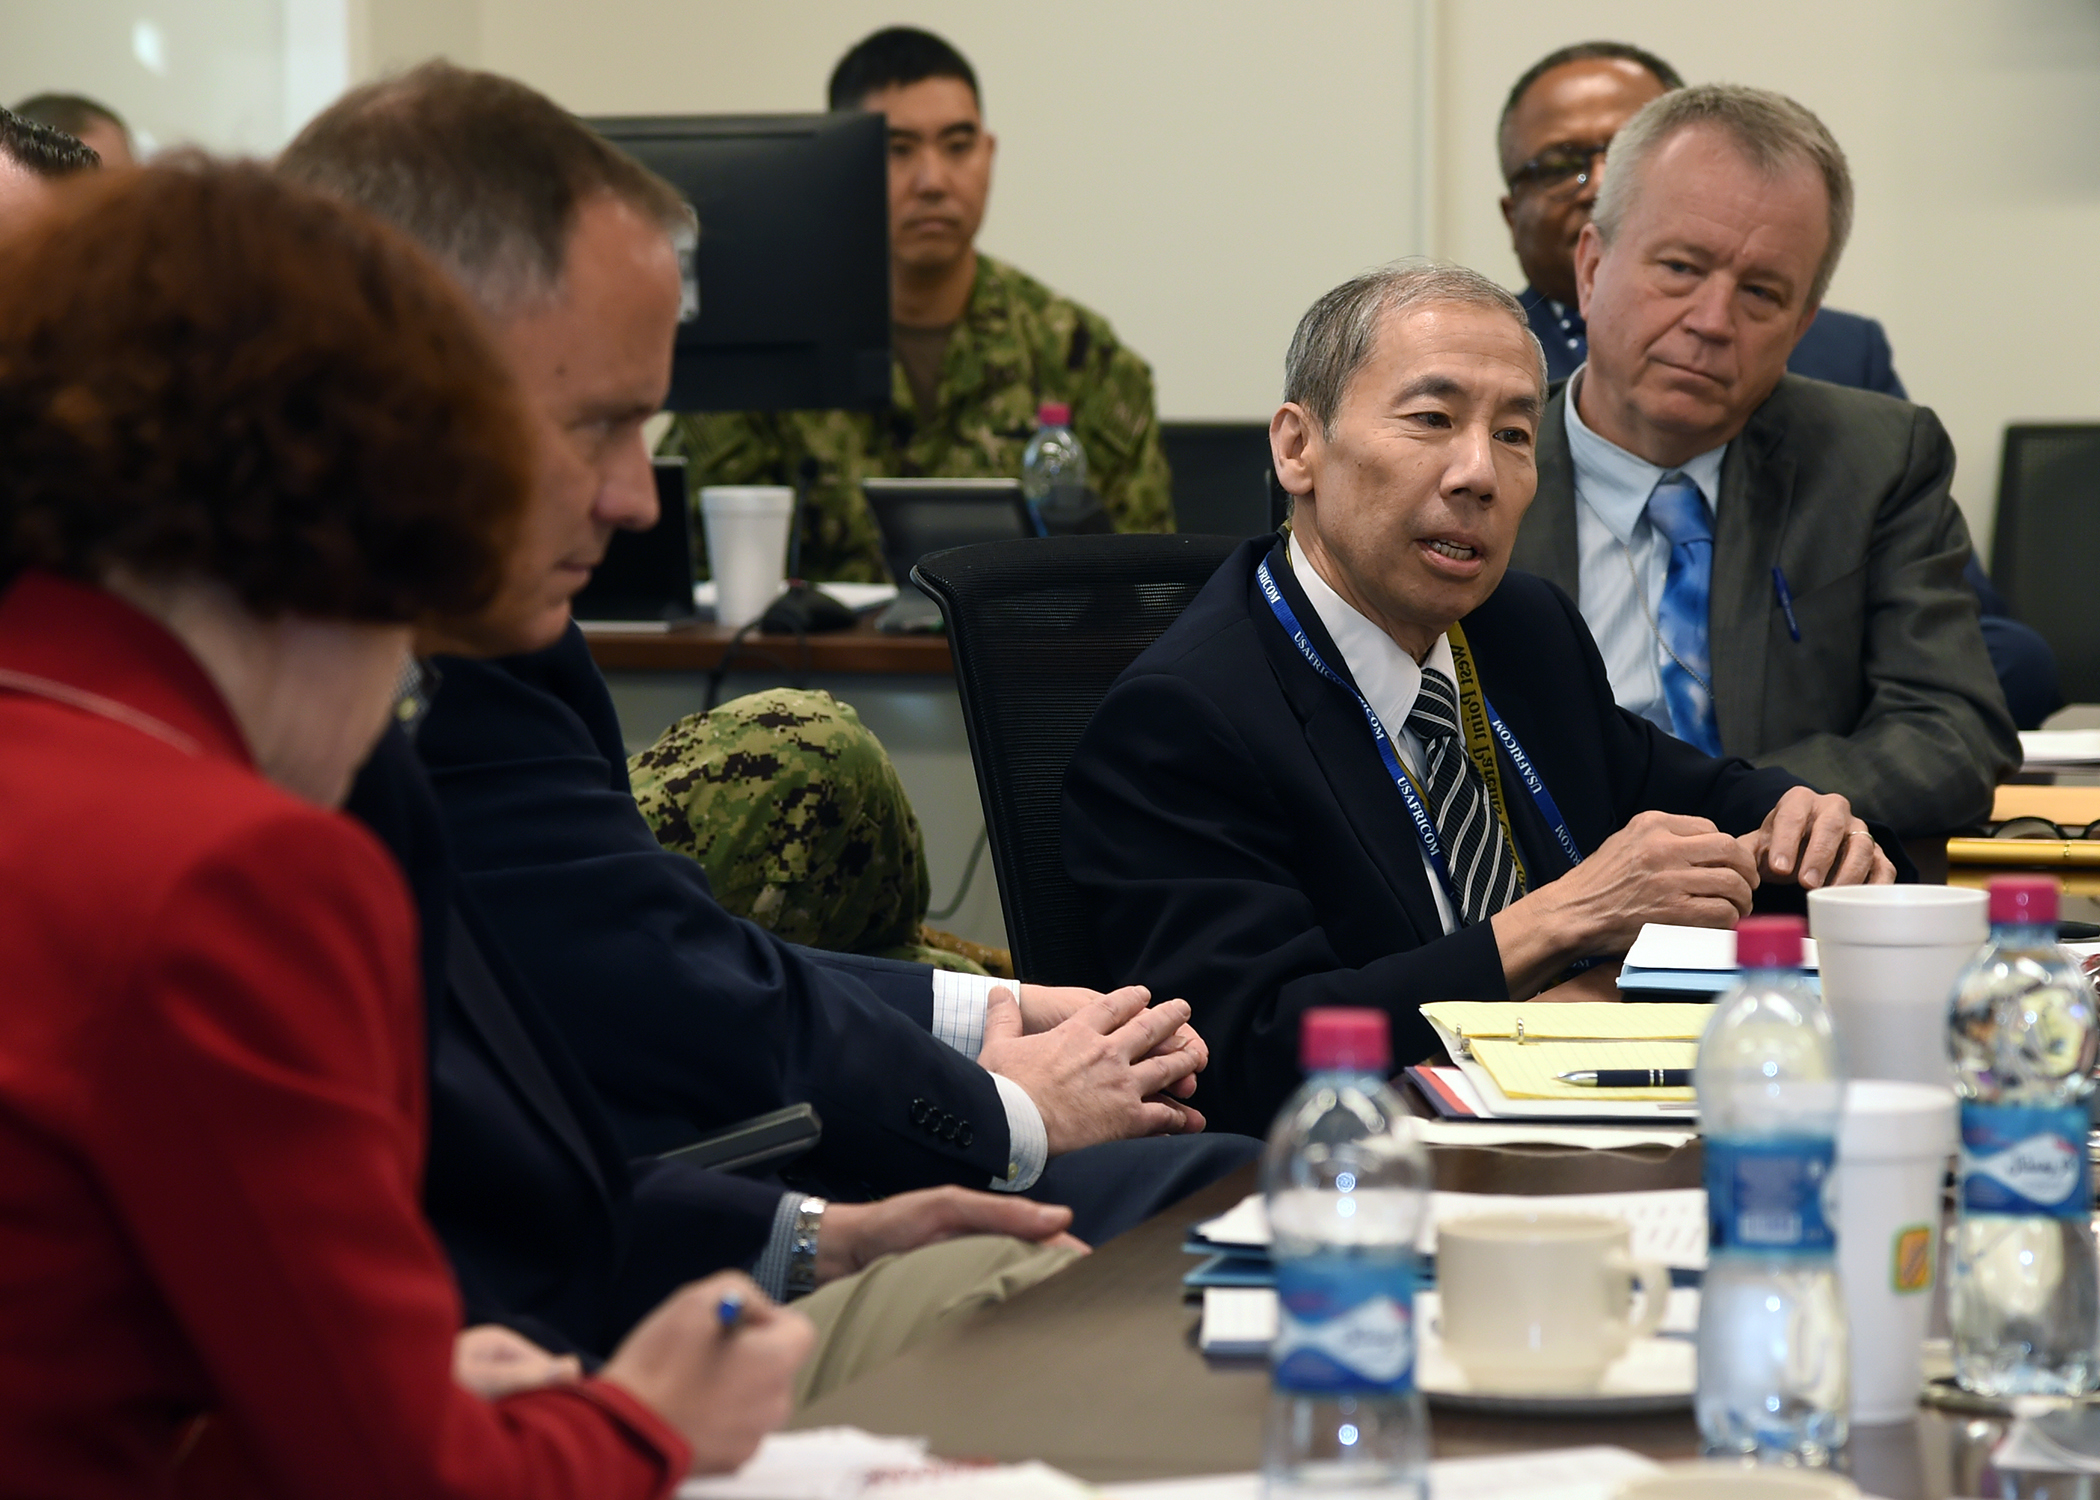 Amb. Donald Yamamoto, U.S. Ambassador to Somalia, addresses U.S. diplomats and joint service personnel at a meeting during the Combined Joint Task Force-Horn of Africa (CJTF-HOA) East Africa Security Forum (EASF) at Camp Lemonnier, Djibouti Dec. 13, 2018. The EASF provides opportunities for CJTF-HOA and interagency leaders to assess and align efforts, and develop synchronized courses of action that support common goals. (U.S. Navy photo by Mass Communication Specialist 1st Class Nick Scott)